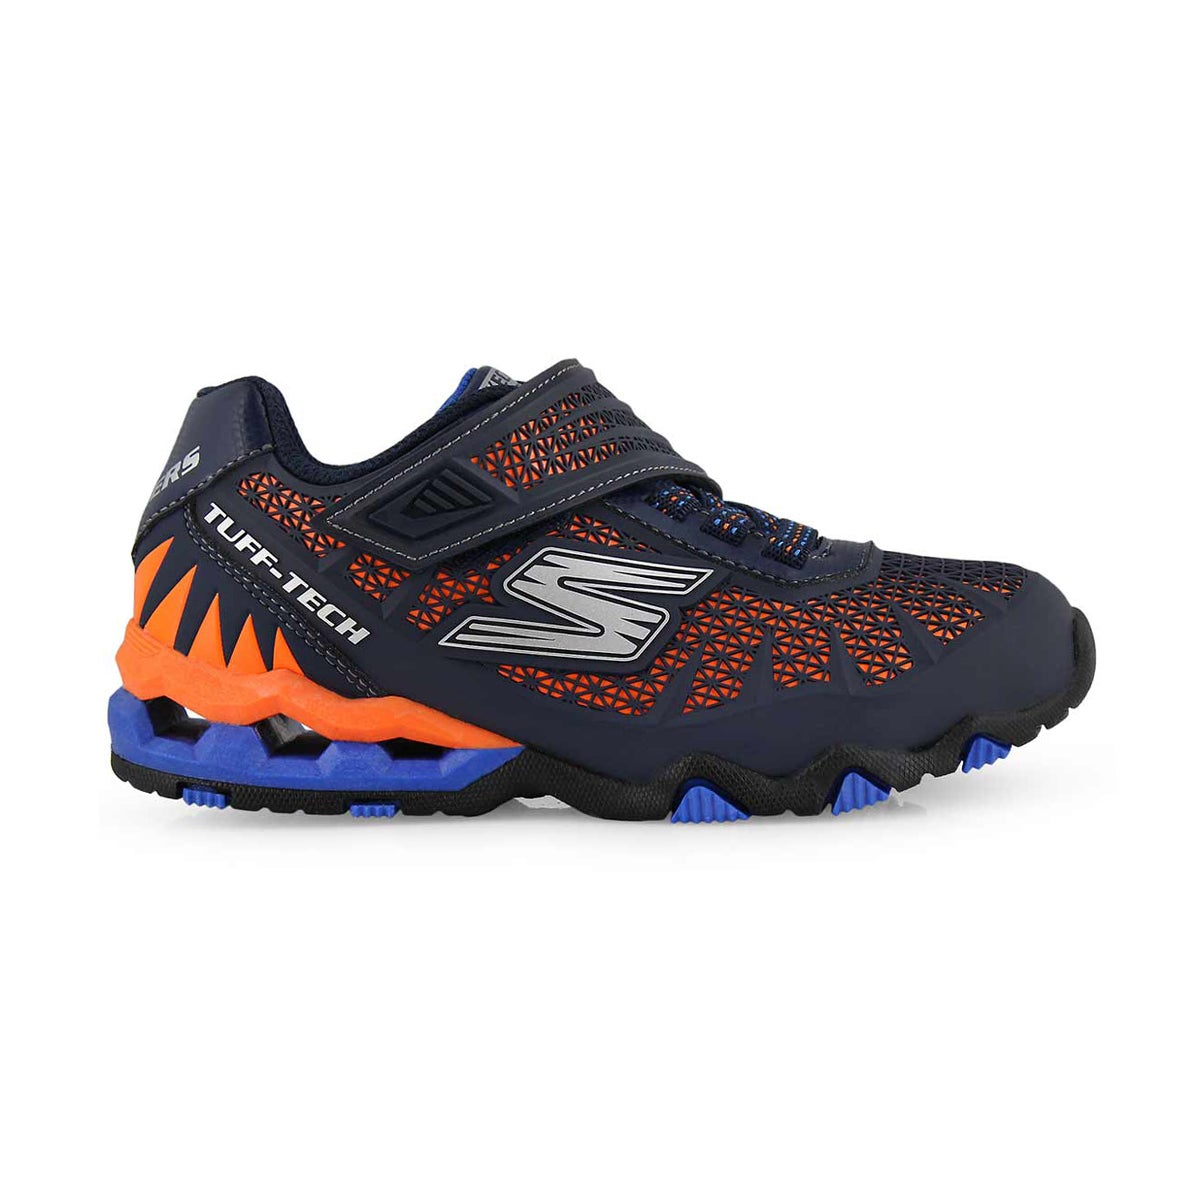 Bys Hydro-Static nvy/org sneaker